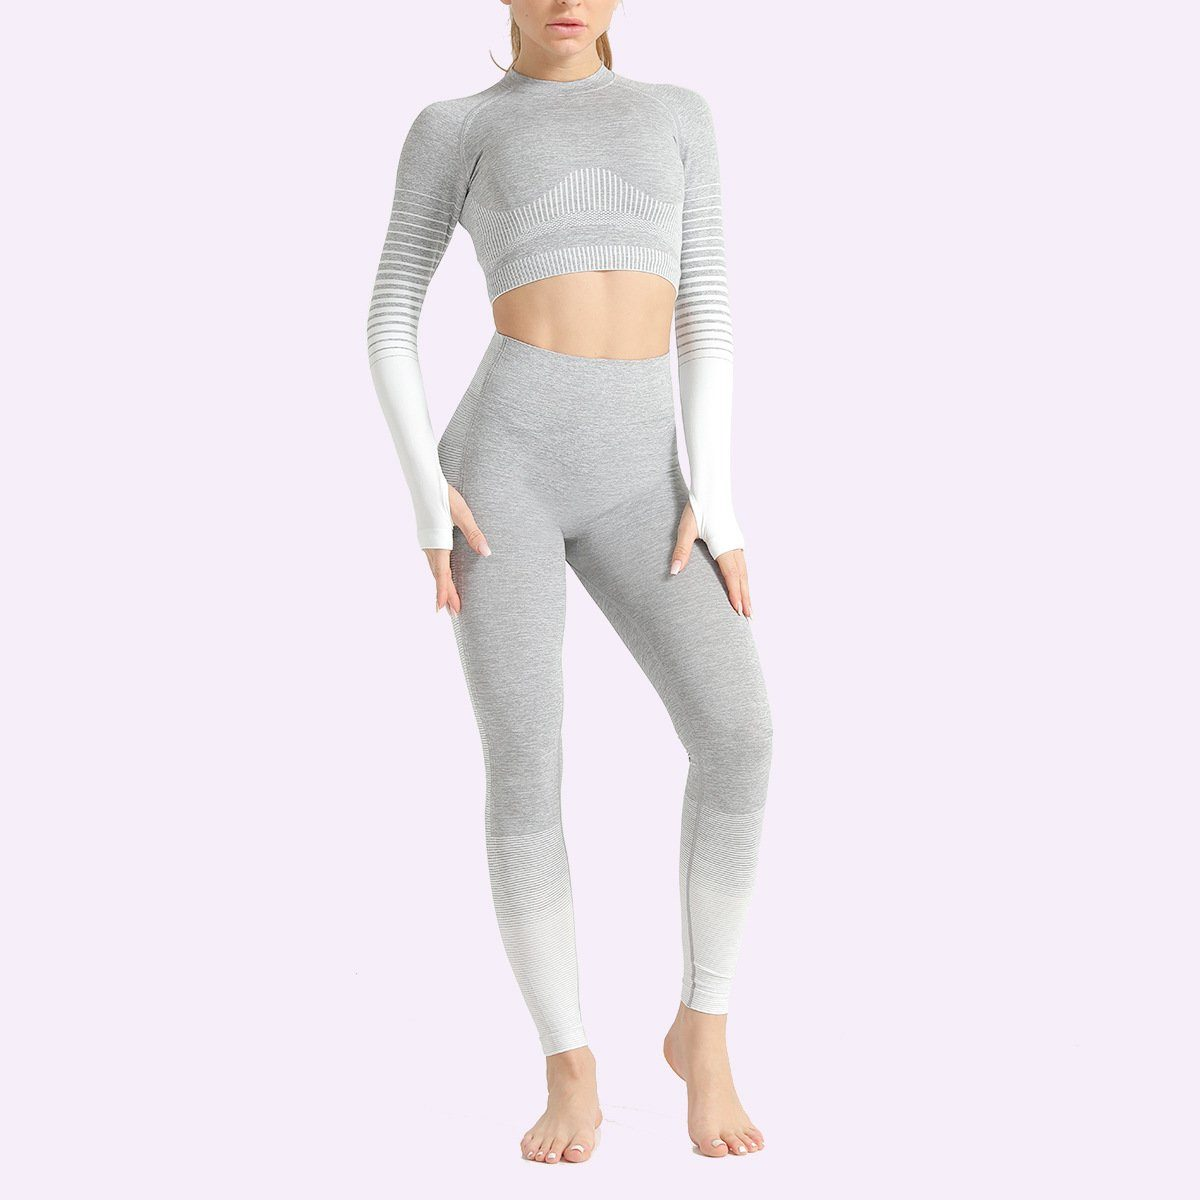 The Extreme Velocity Slimming Gradient Push-Up High-Waisted Seamless Yoga Gym Leggings & Long Sleeve Crop Top Yoga Sets AJISSI Sportwear Store